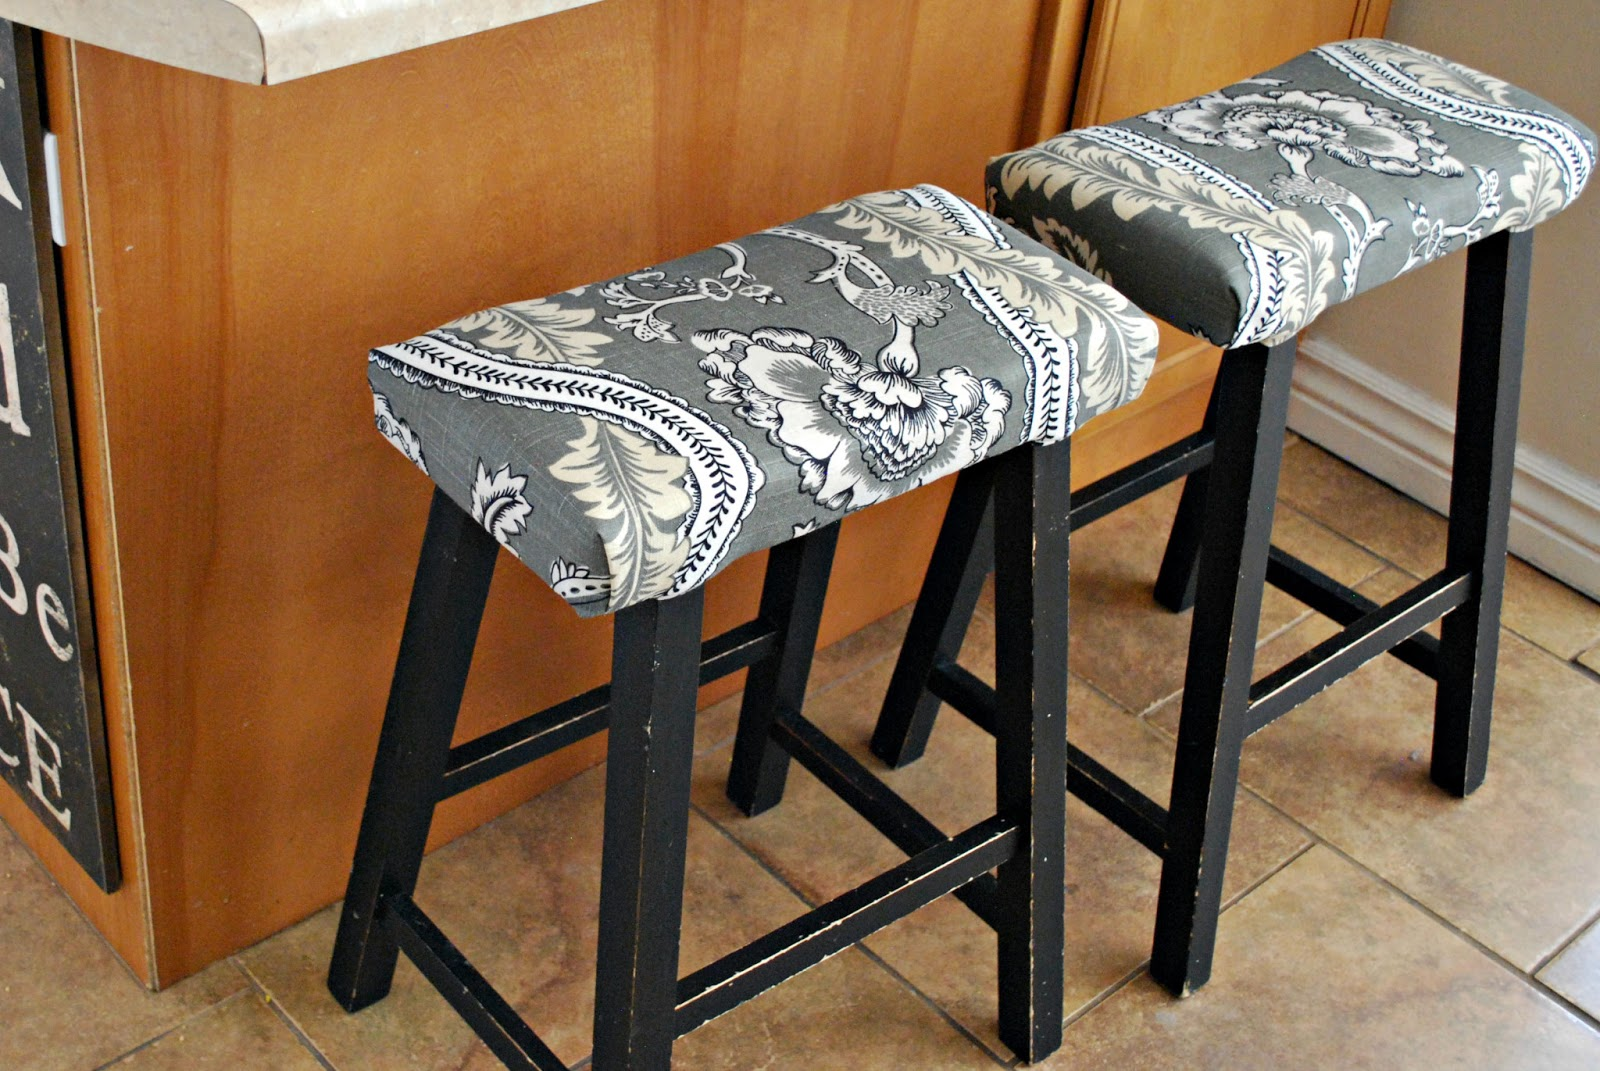 How to Upholster Barstools and Studio 5~ & The Shabby Nest: How to Upholster Barstools and Studio 5~ islam-shia.org